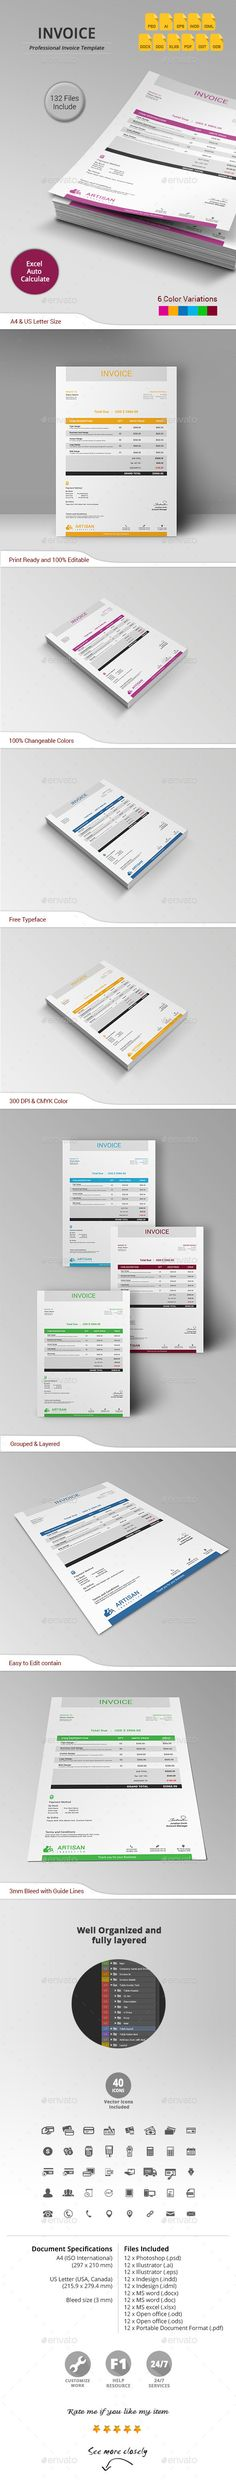 Simple and Clean Invoice Invoice template, Proposals and Photoshop